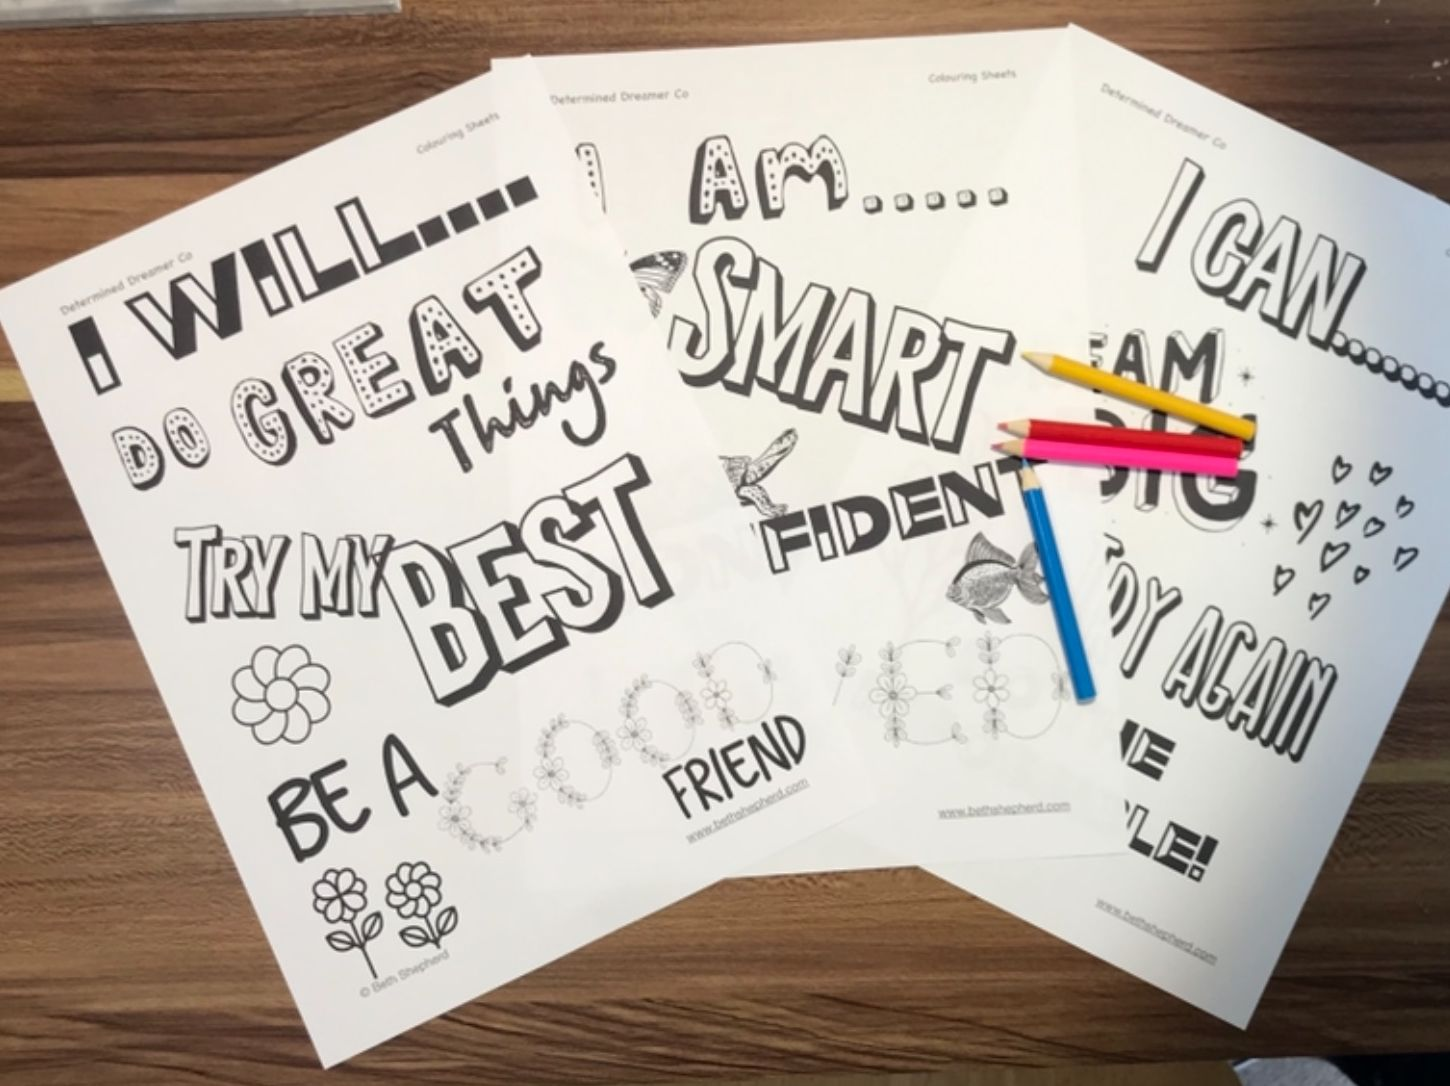 I am a Determined Dreamer - Worksheets, posters, activities and positive statements sheet to encourage a determined mind!